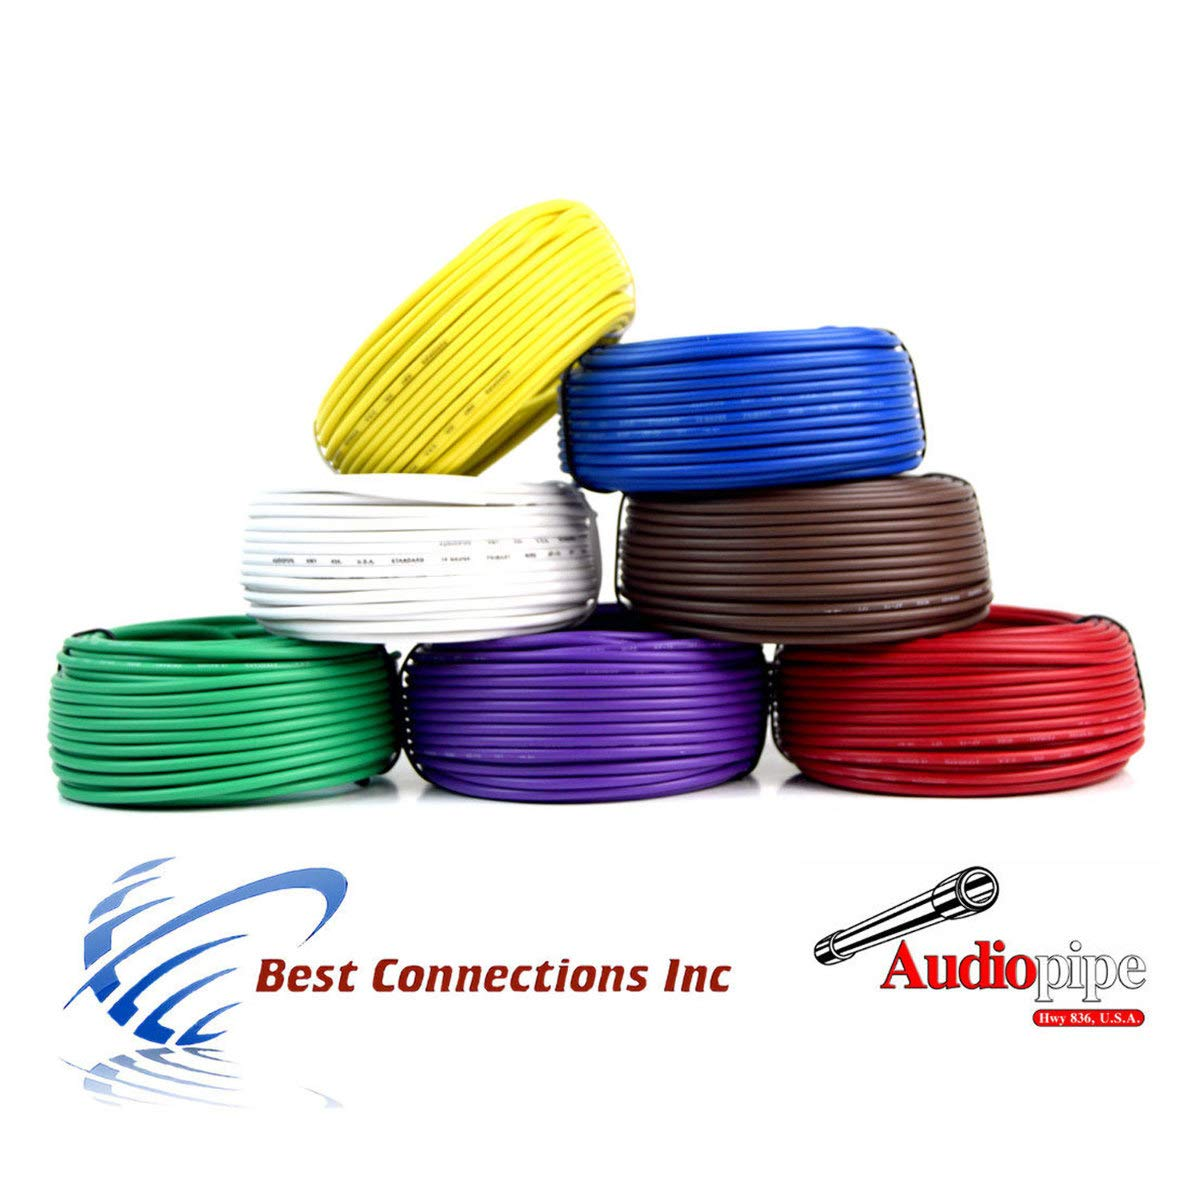 Best Wiring Harness For Trailers Trailer Light Cable 50ft Spools 14 Gauge 7 Wire Colors